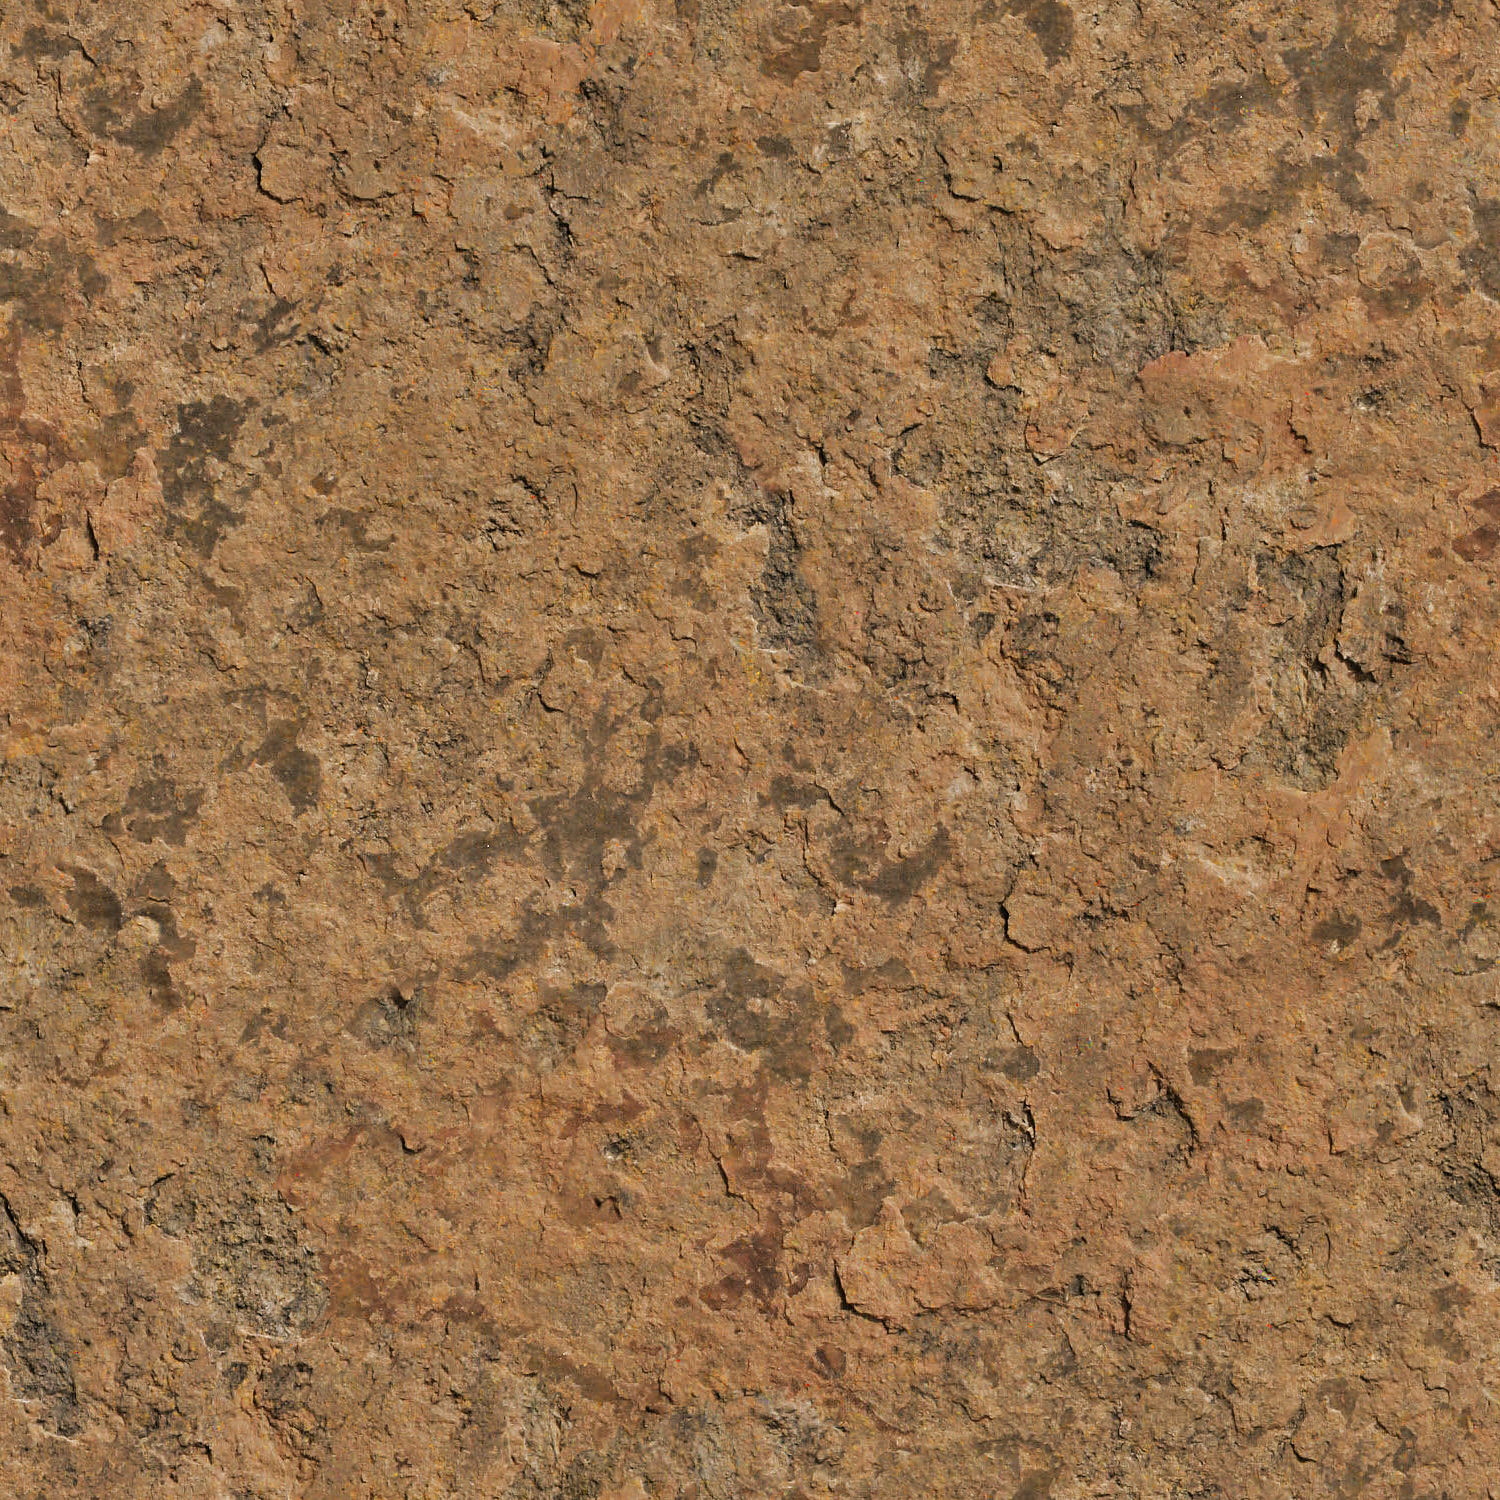 High Res Stone : High resolution textures stone